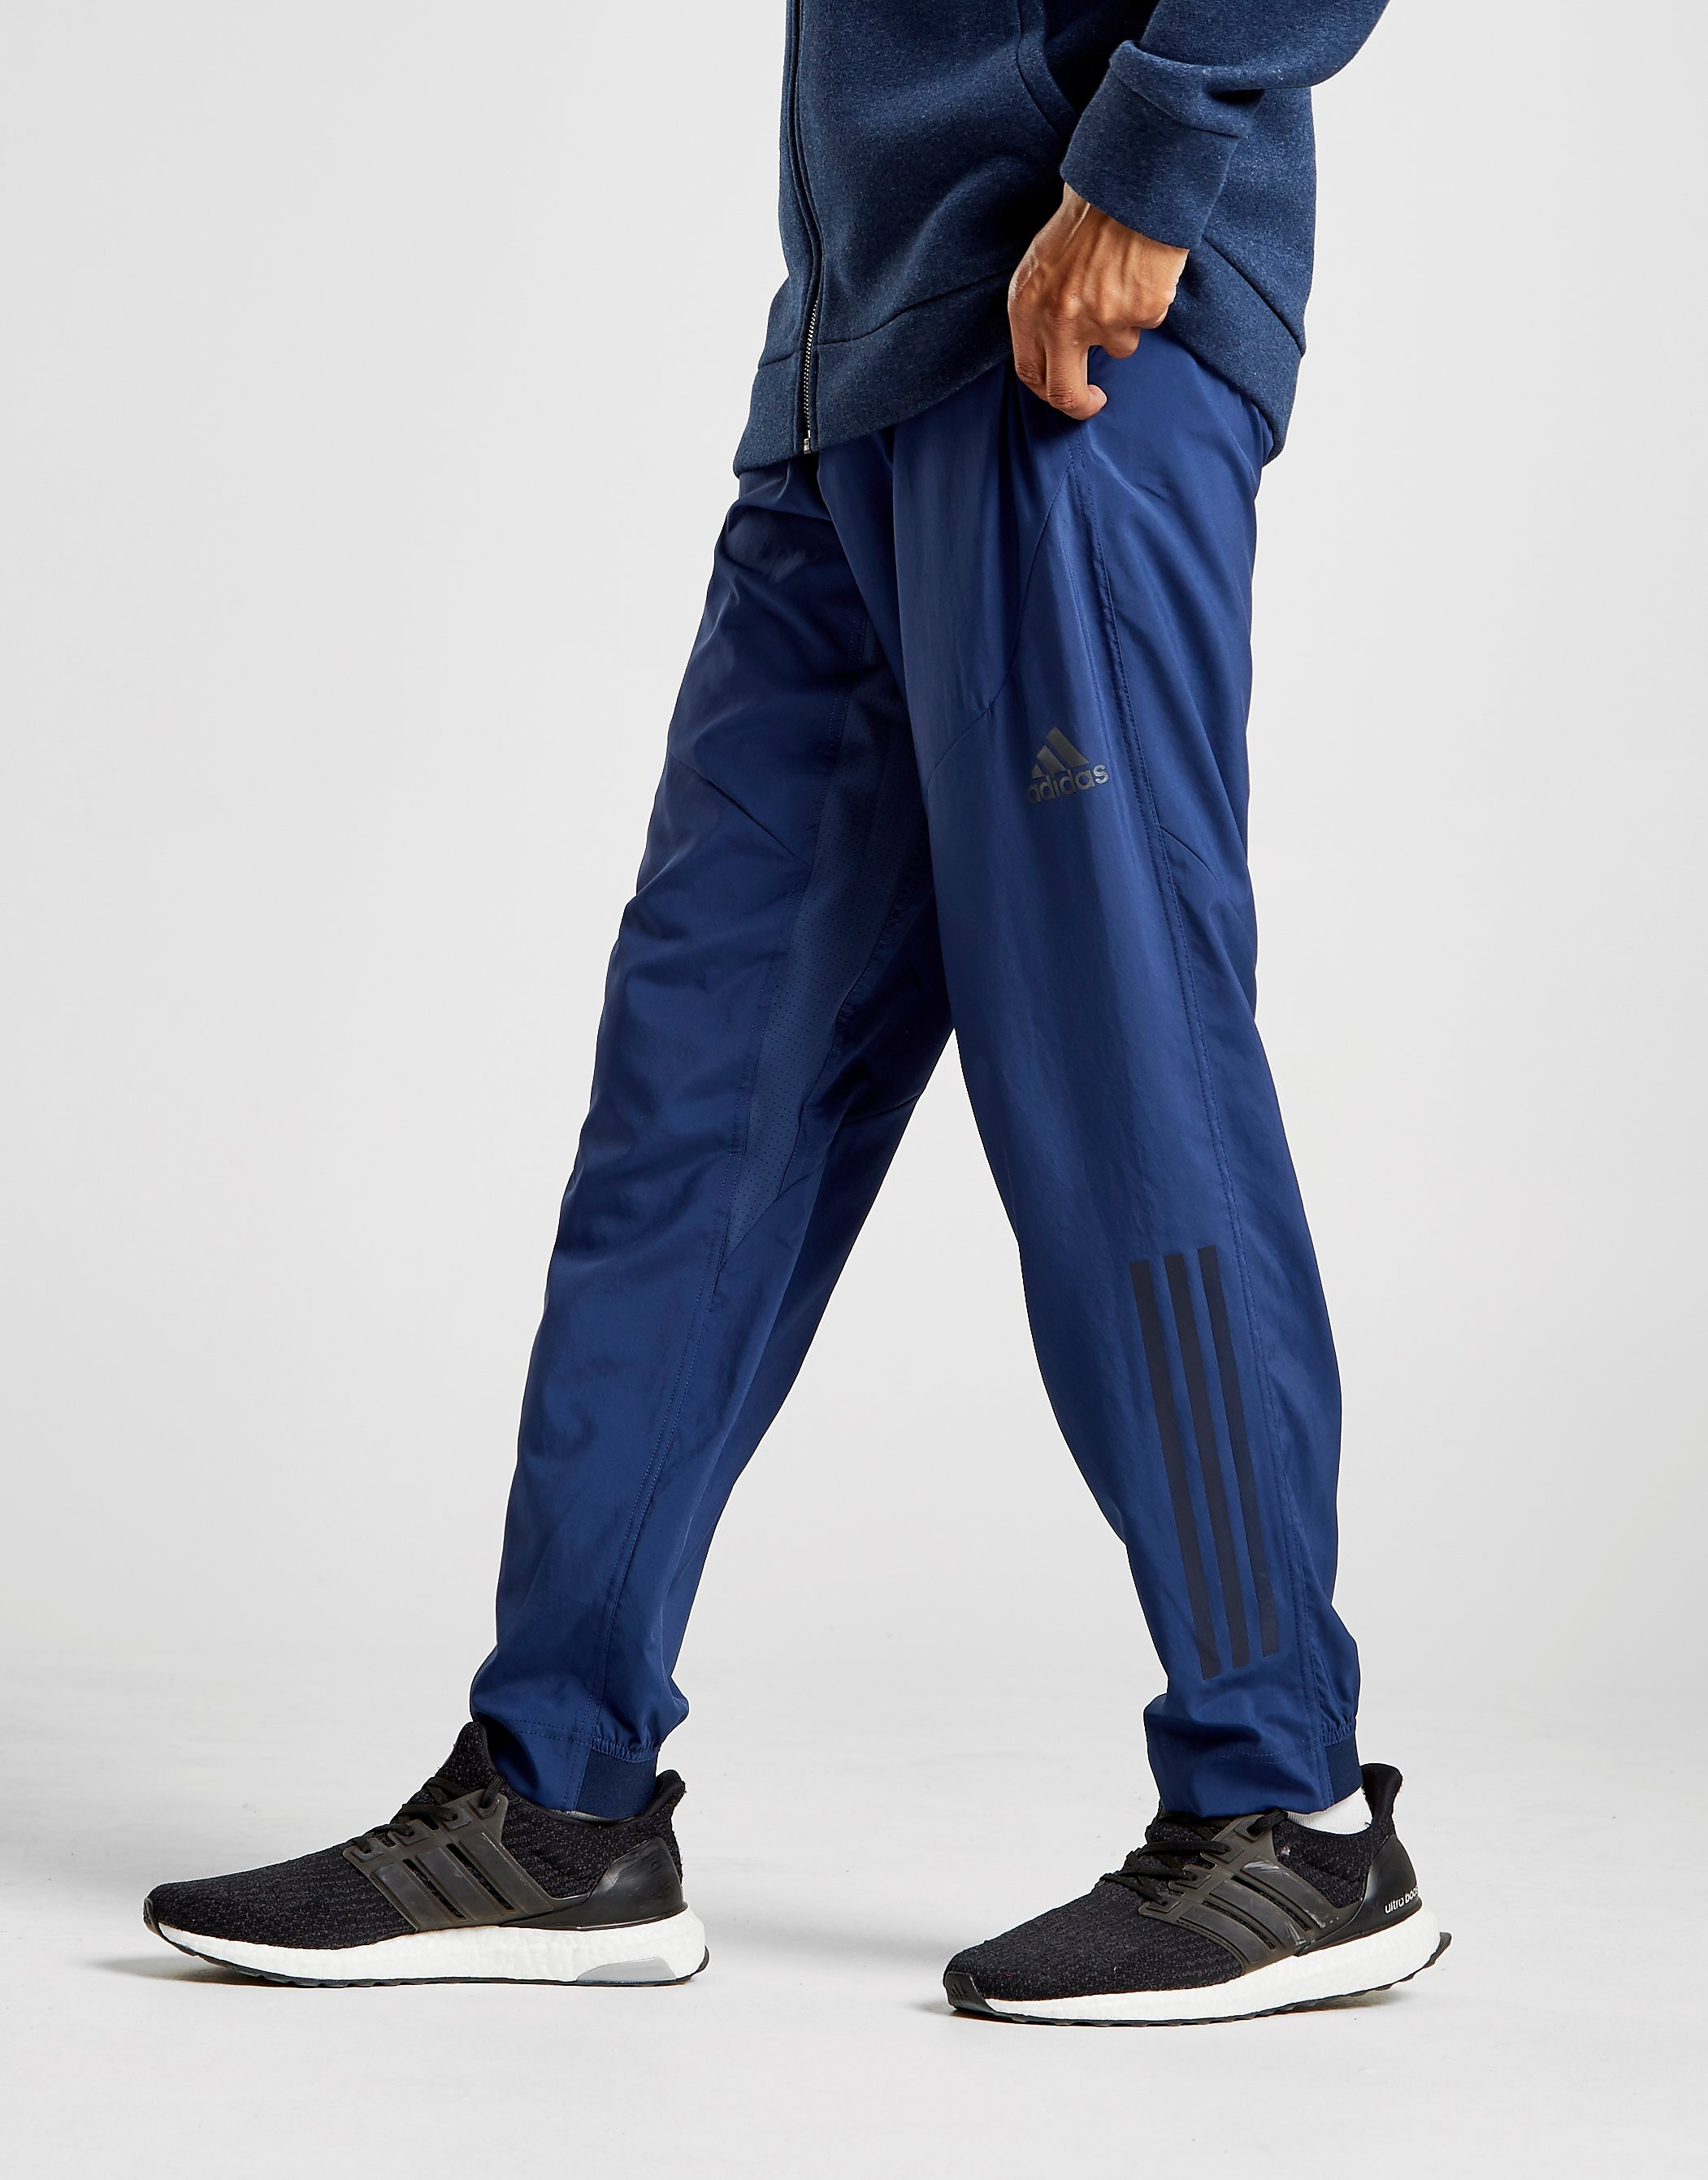 adidas Climacool Woven Pants